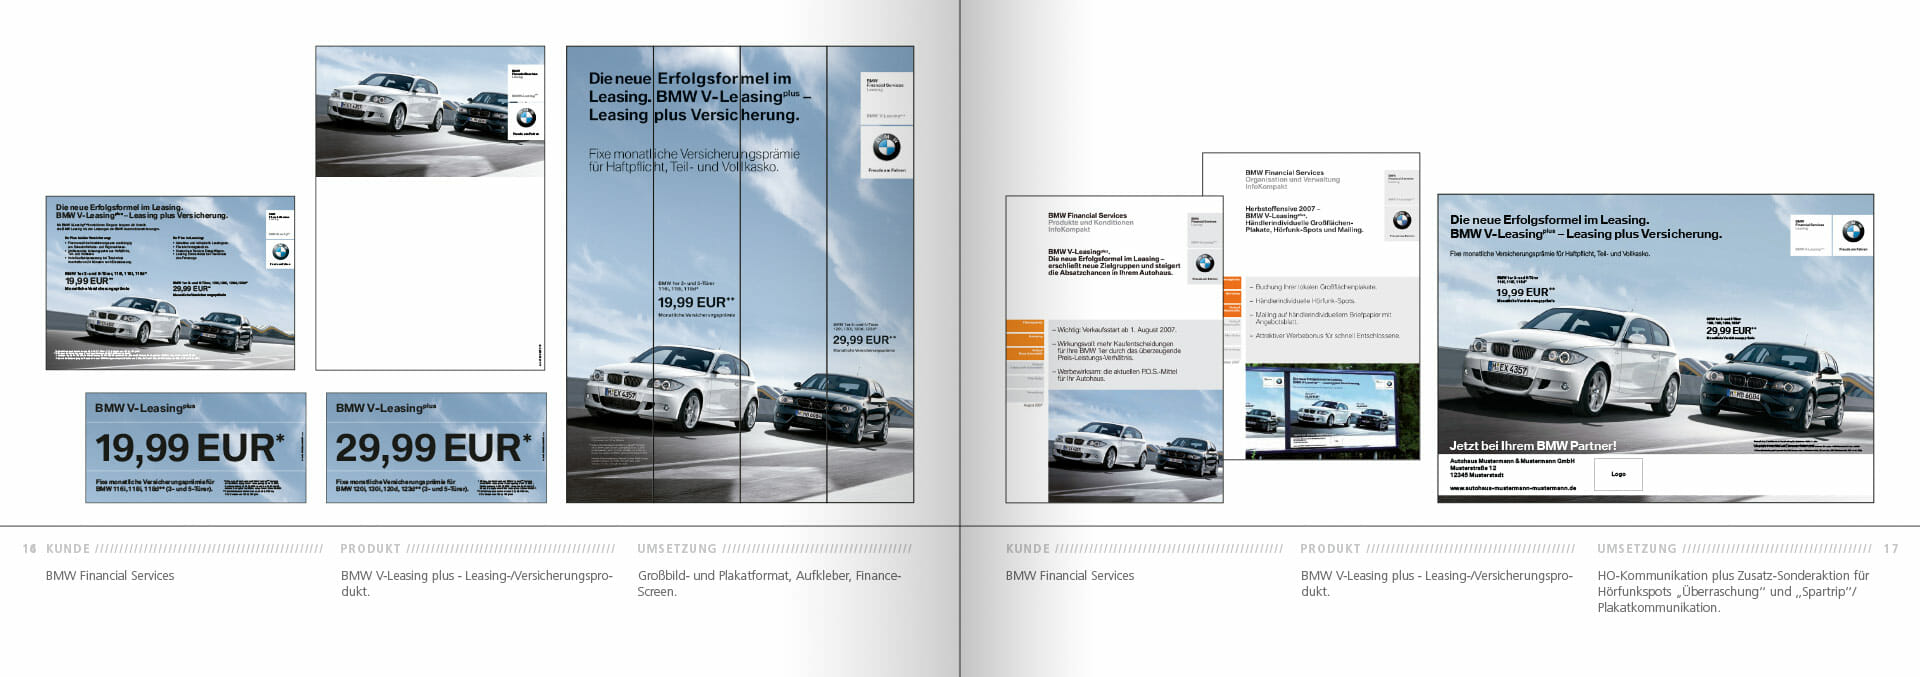 BMW Group Works 2001-2009 Booklet 16-17